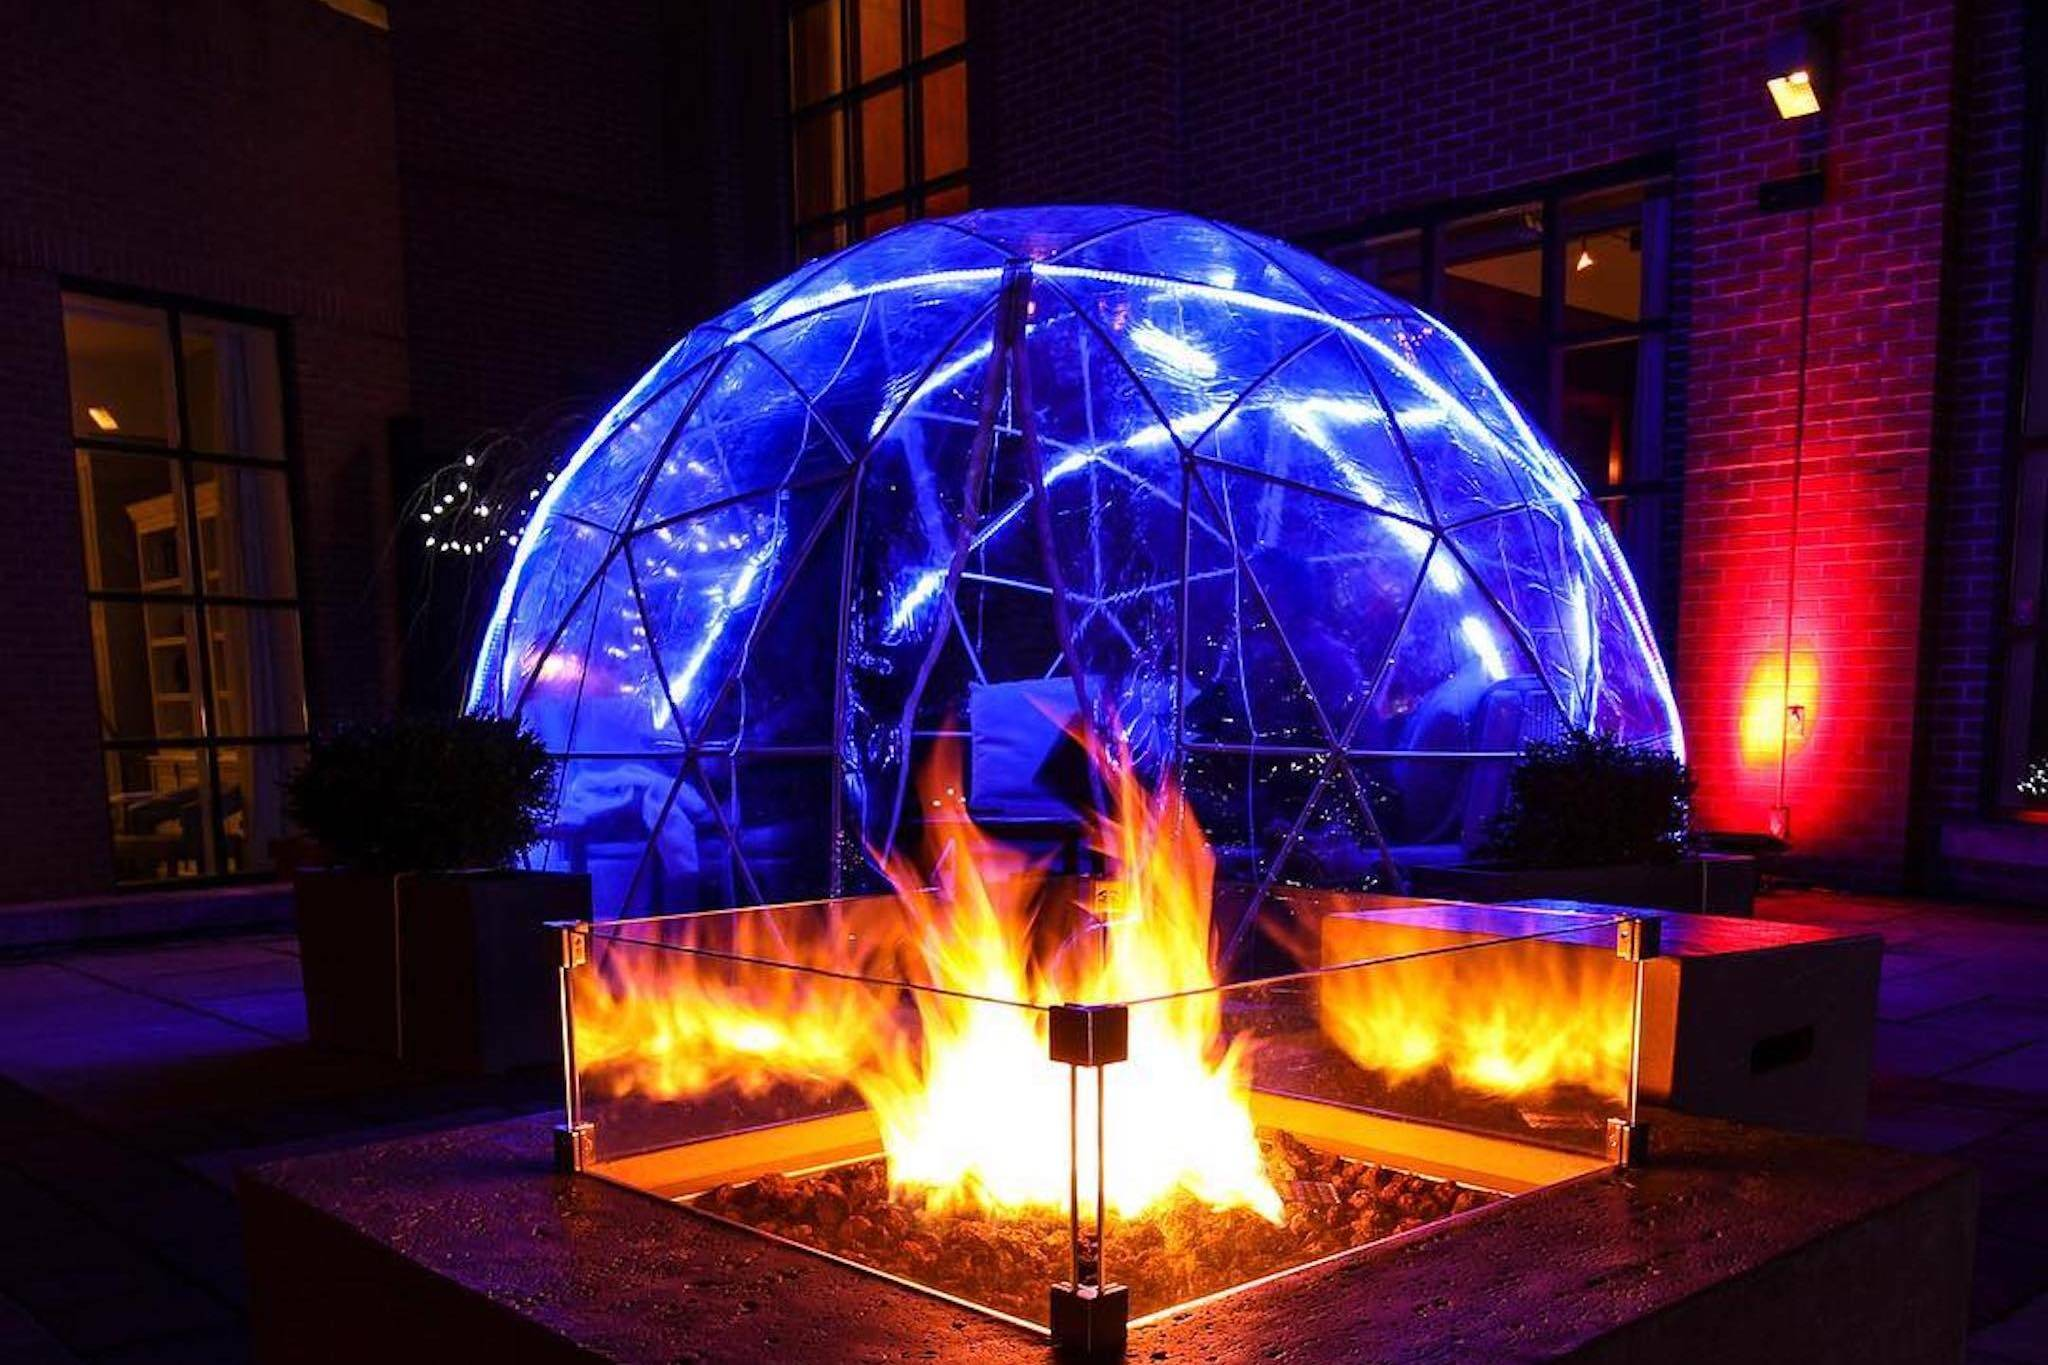 toronto restaurant heated igloo